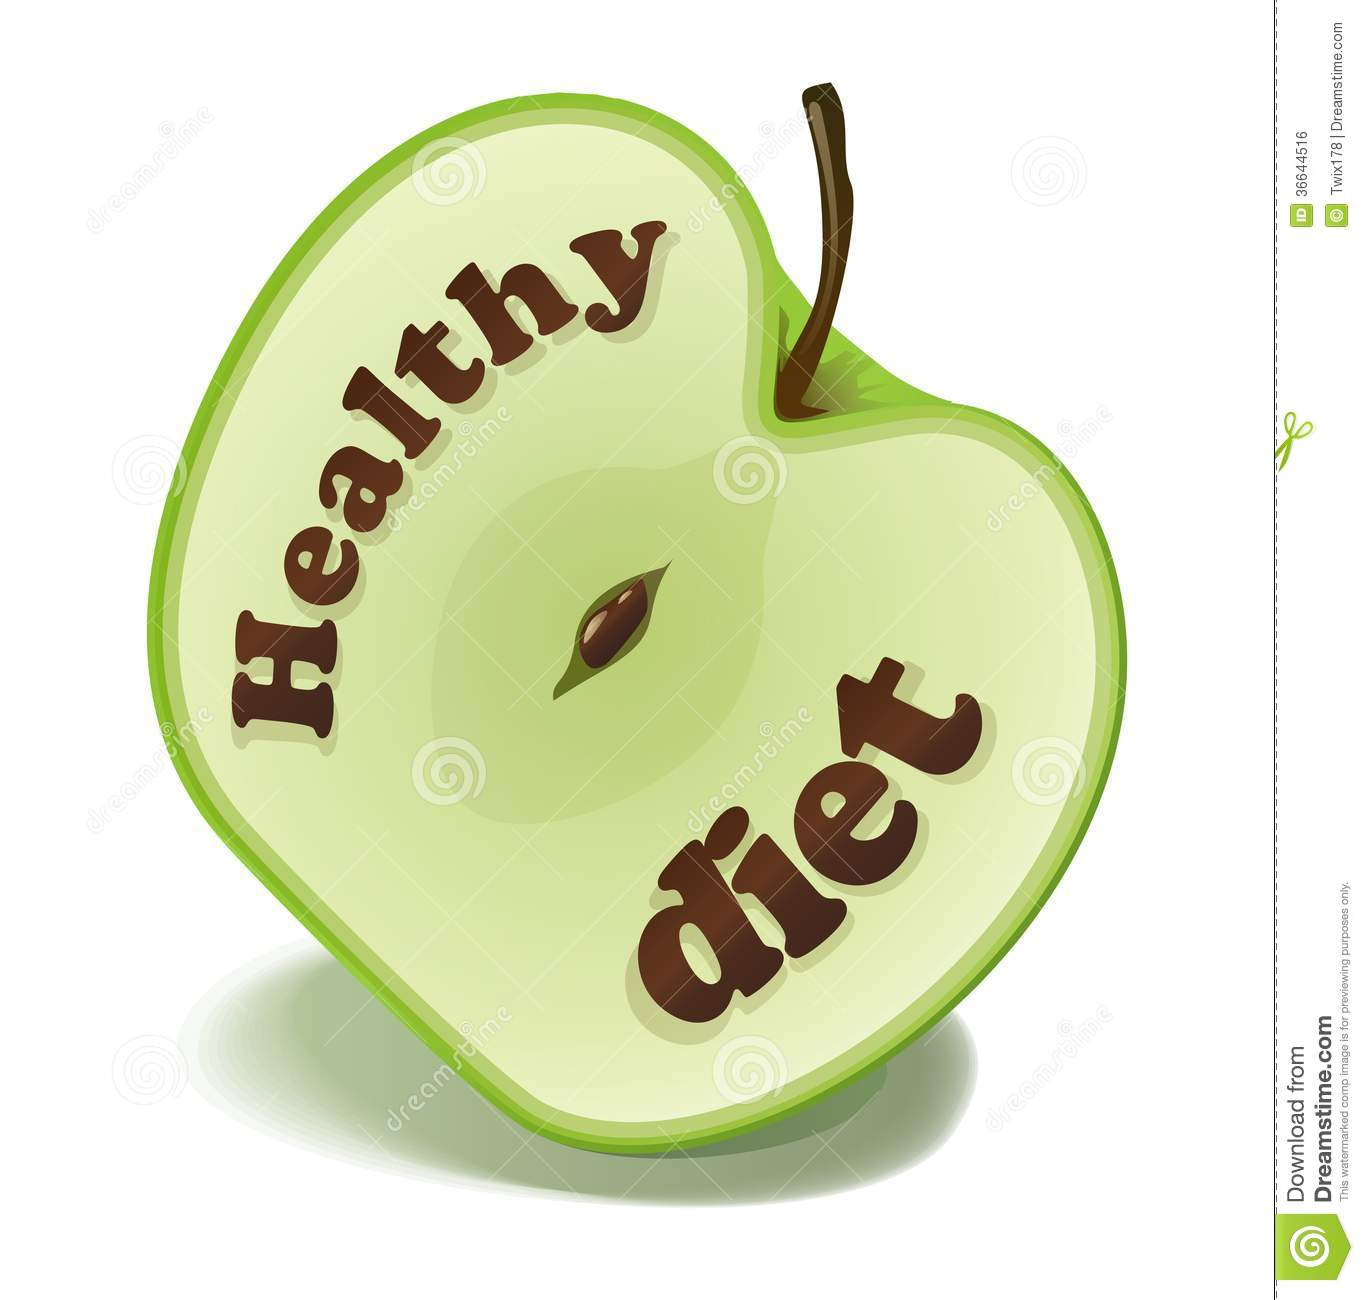 Healthy Eating Clipart Free.